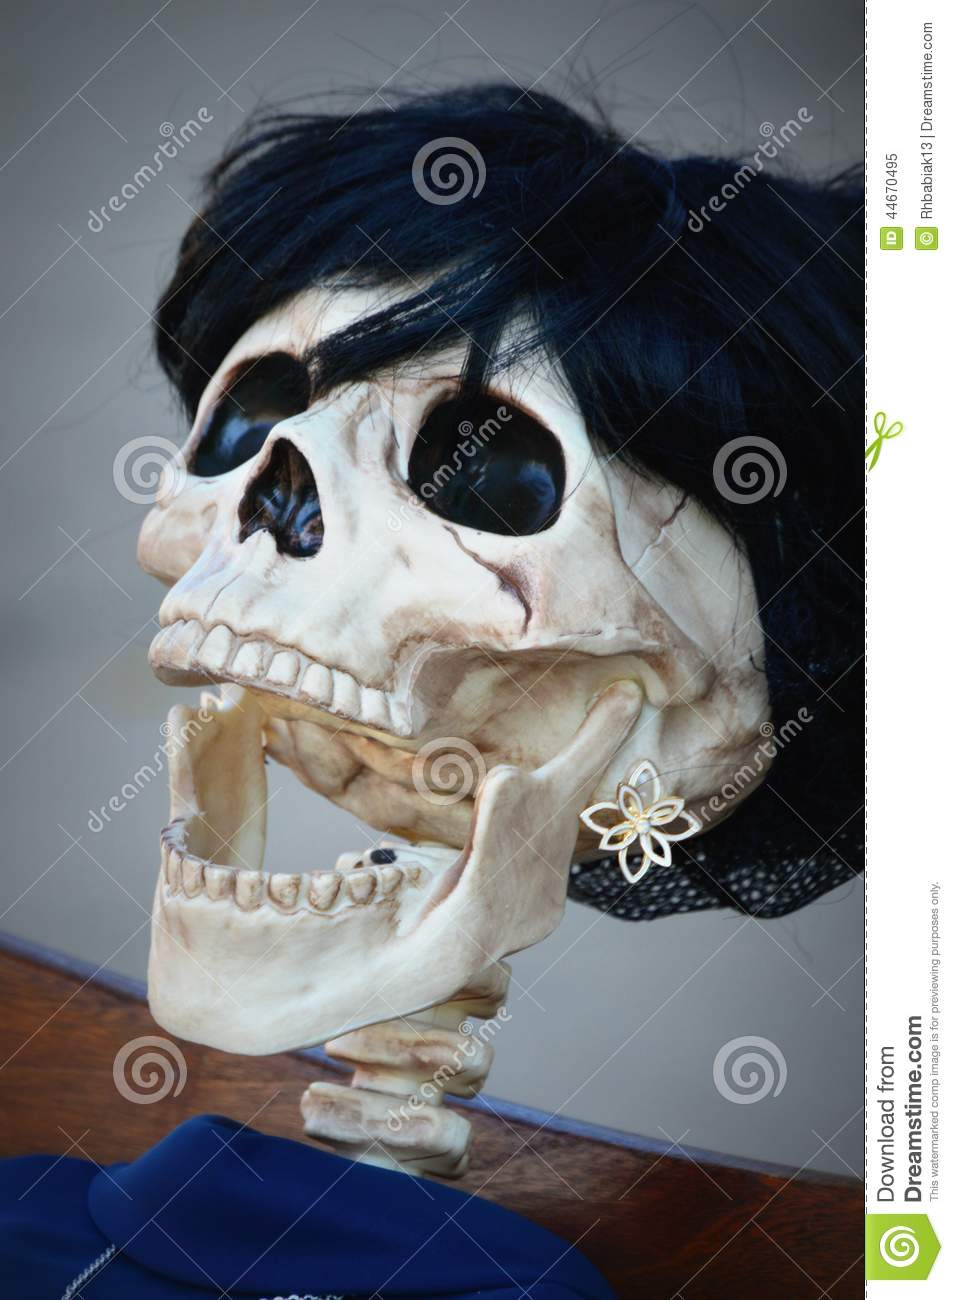 Skeleton Laughing Woman Black Wig Earing Delevan Wisconsin Scarecrow Festival moreover Infrahyoids also Chin Supporting Travel Pillow additionally Shoulder Muscle Model Labeled moreover Ma Ldjjta. on neck muscles